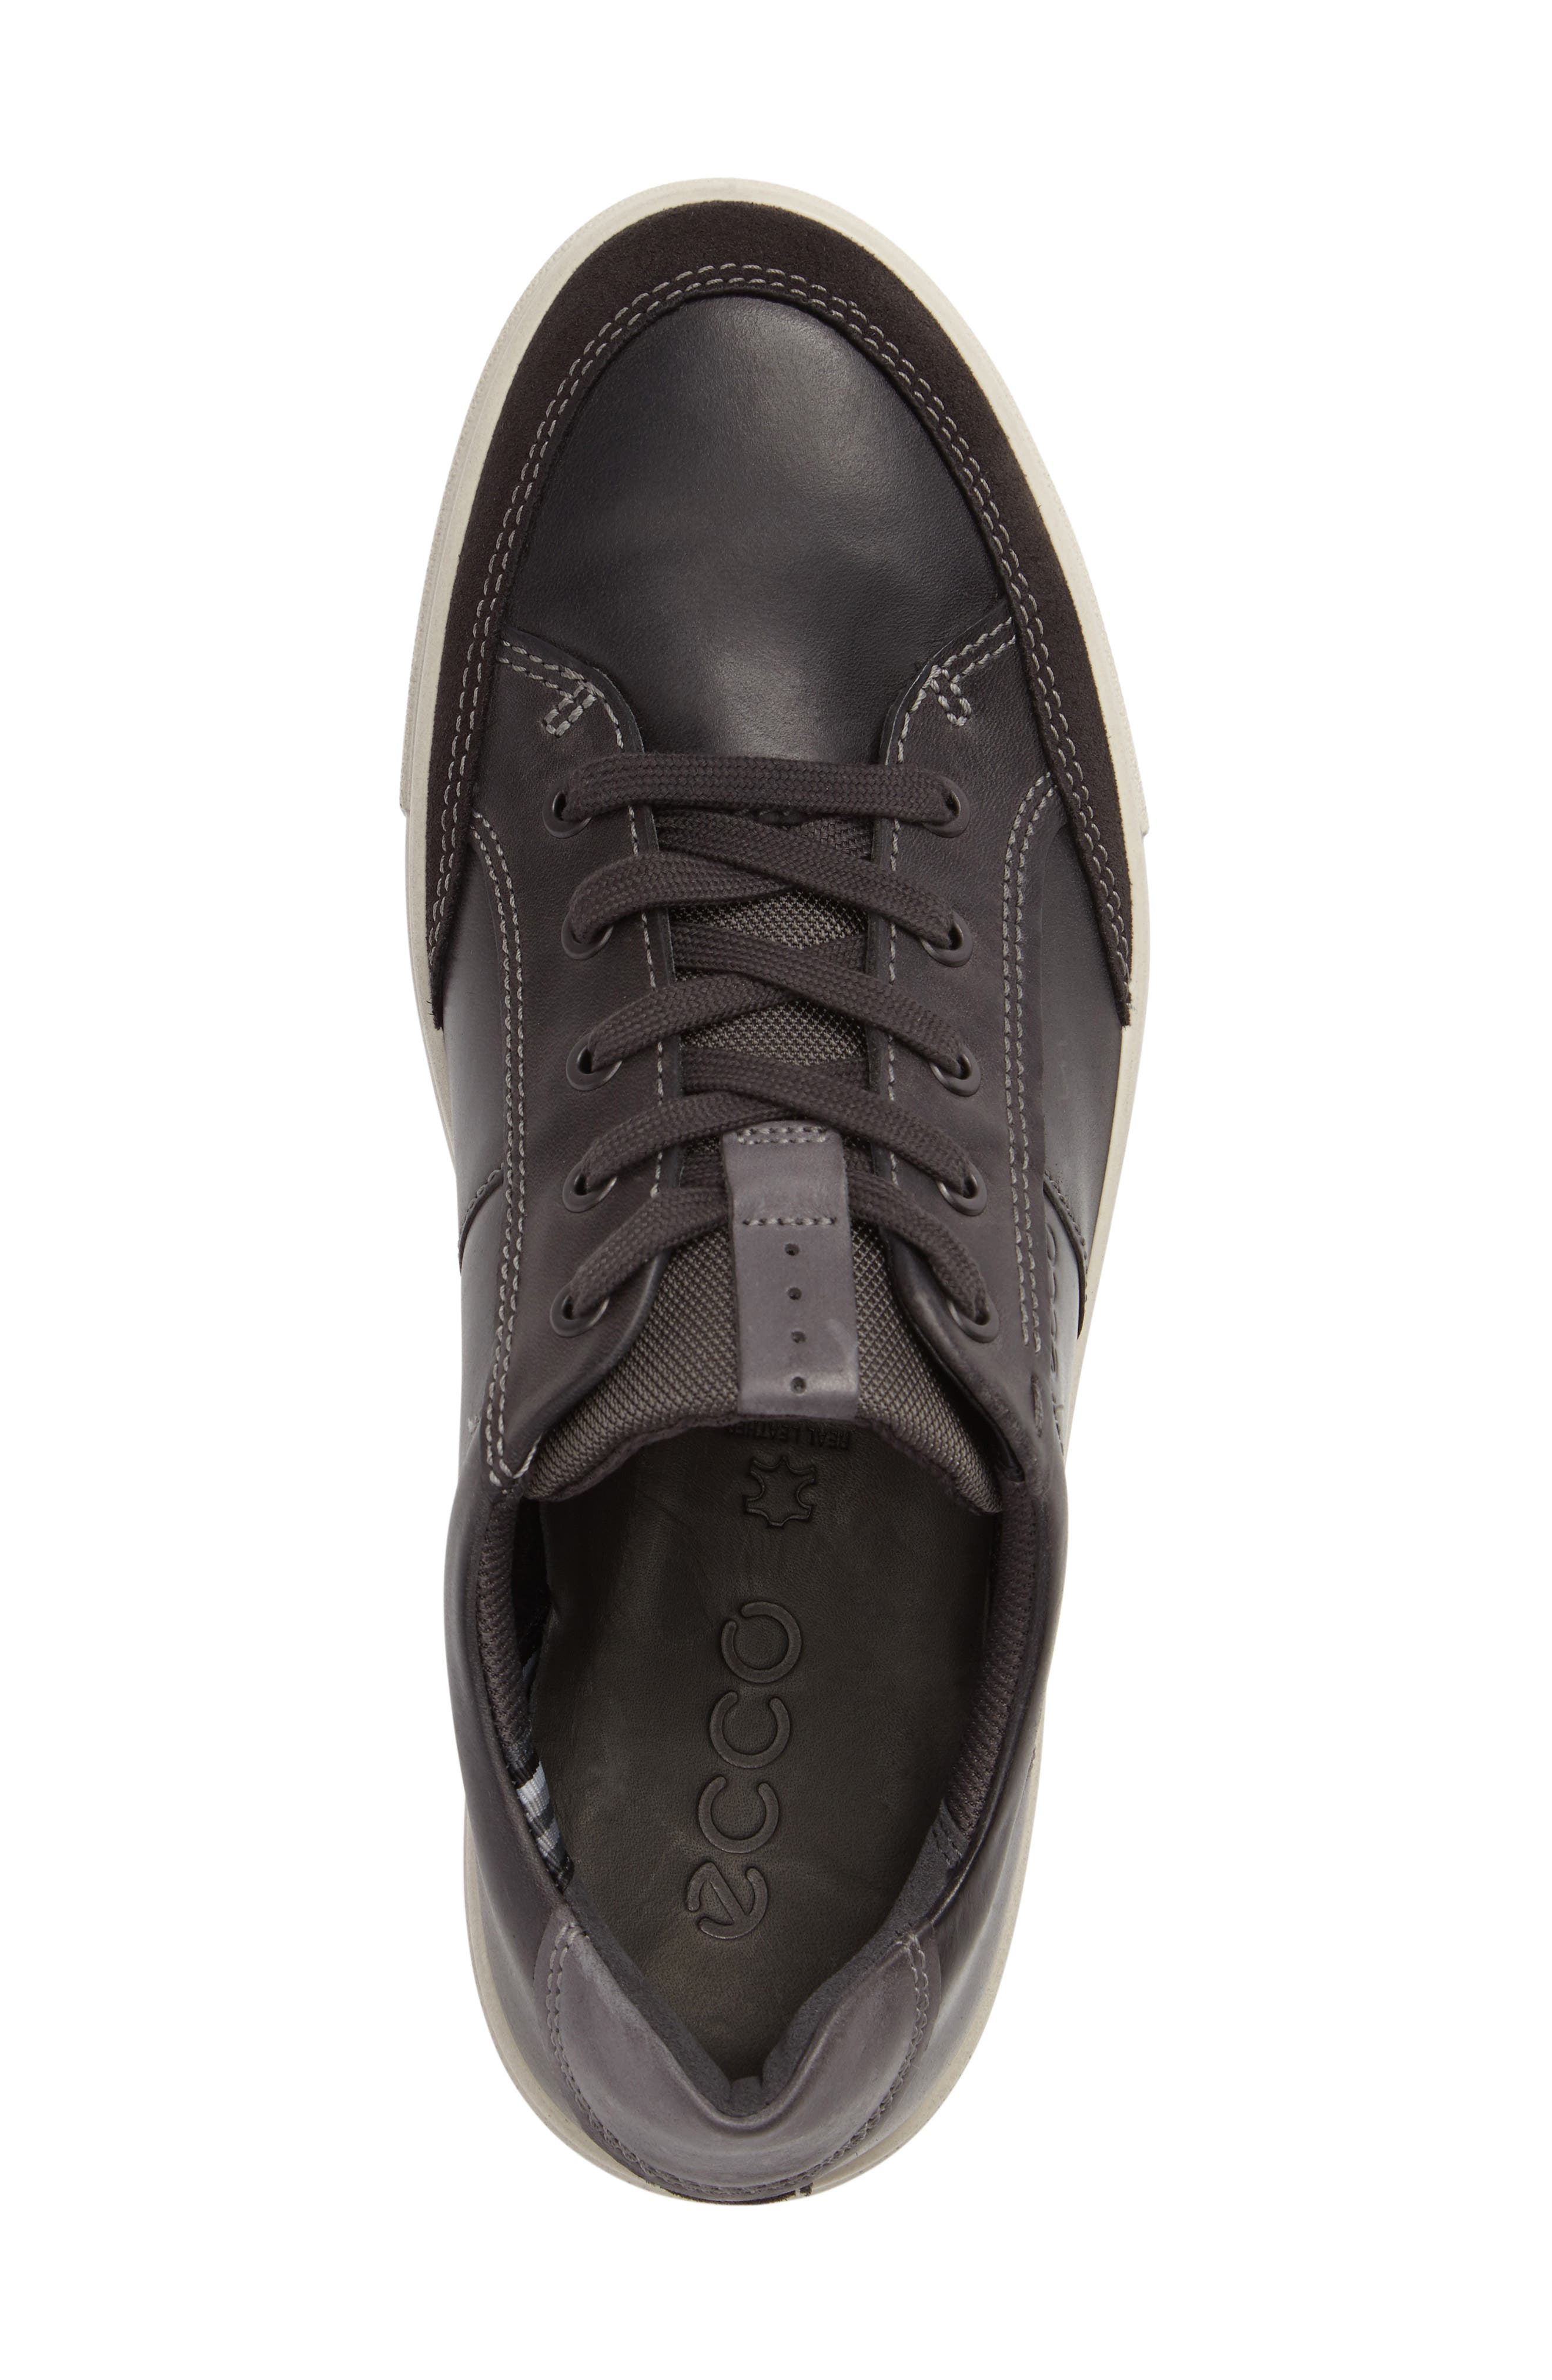 Kyle Classic Sneaker,                             Alternate thumbnail 3, color,                             Moonless Leather